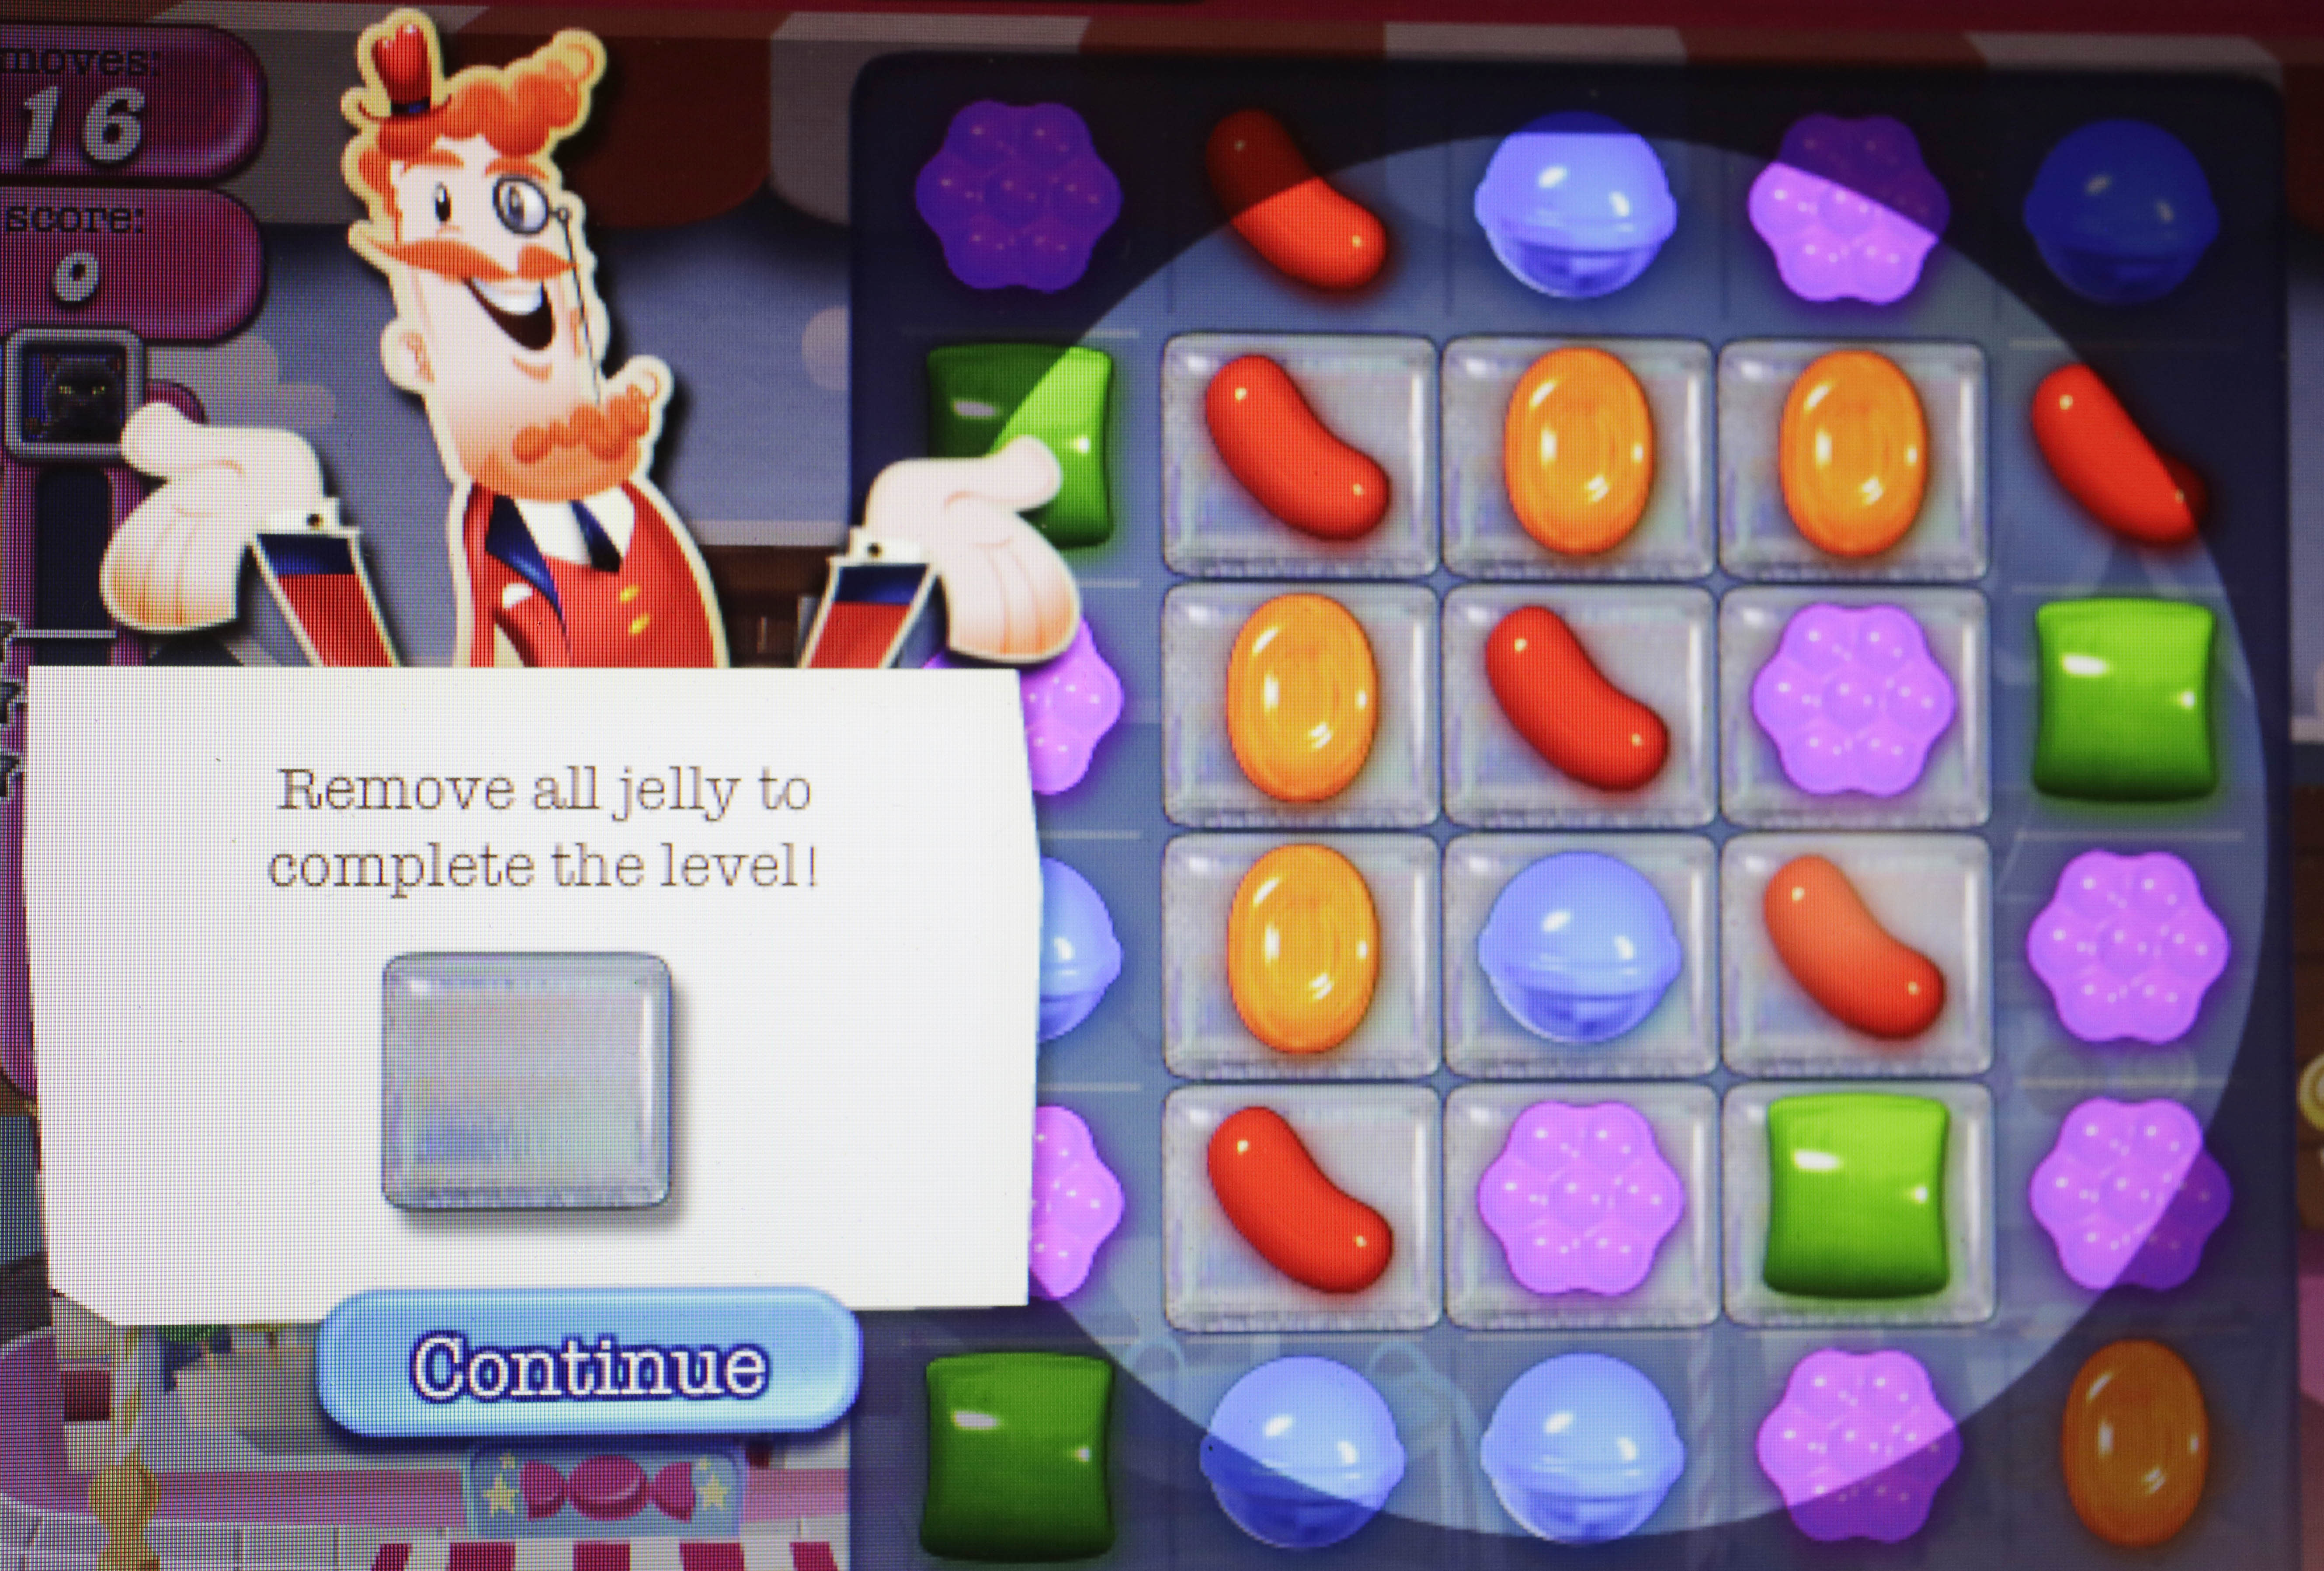 Candy crush maker an unloved stock time to buy shares biocorpaavc